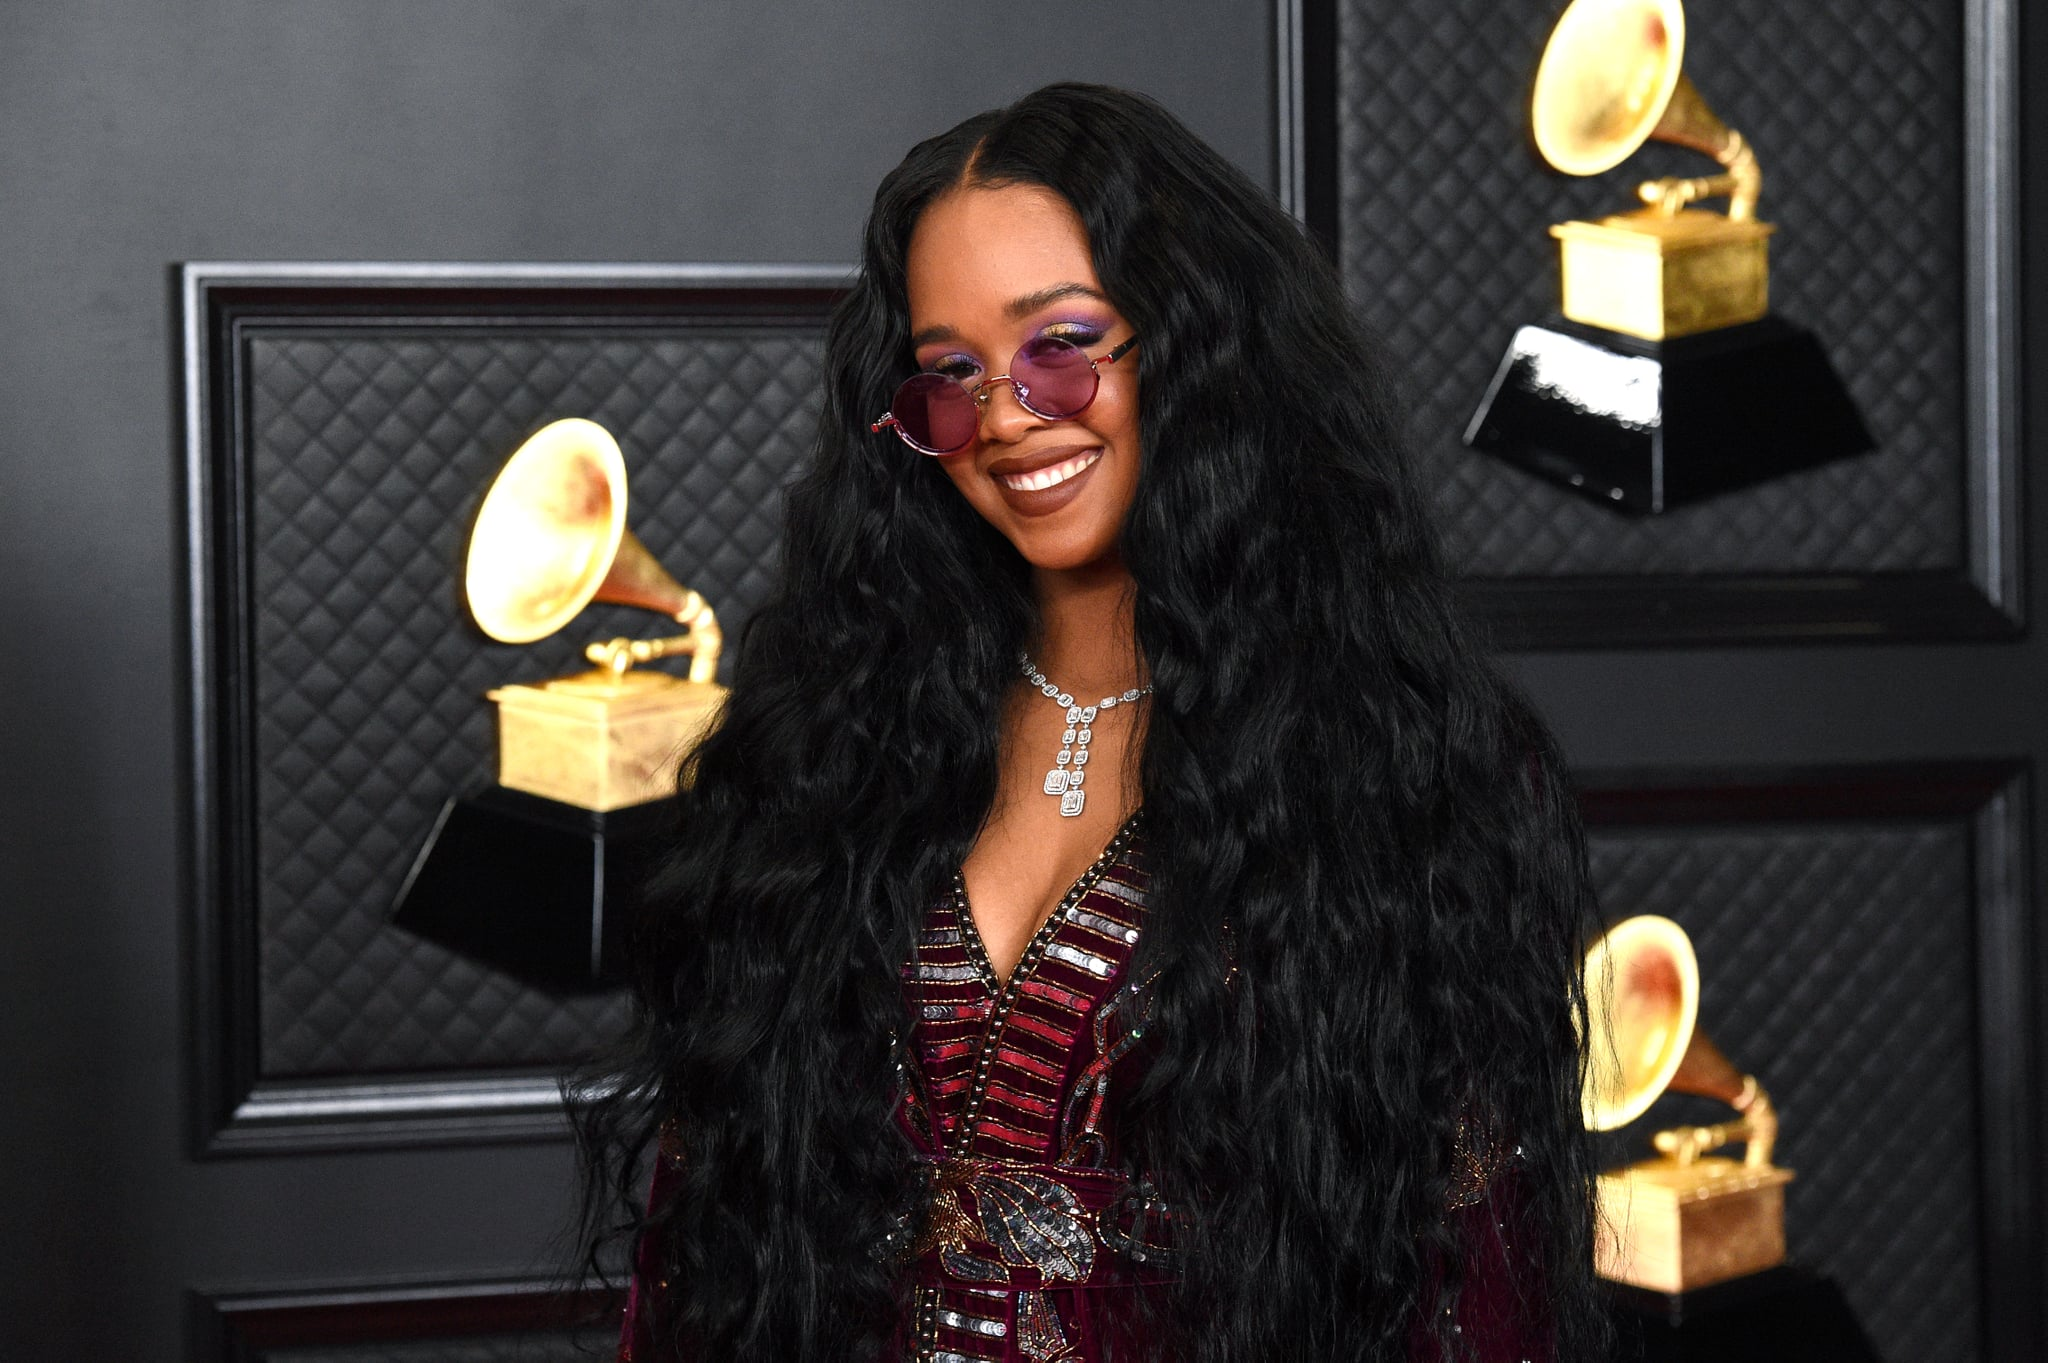 LOS ANGELES, CALIFORNIA - MARCH 14: H.E.R. attends the 63rd Annual GRAMMY Awards at Los Angeles Convention Centre on March 14, 2021 in Los Angeles, California. (Photo by Kevin Mazur/Getty Images for The Recording Academy )